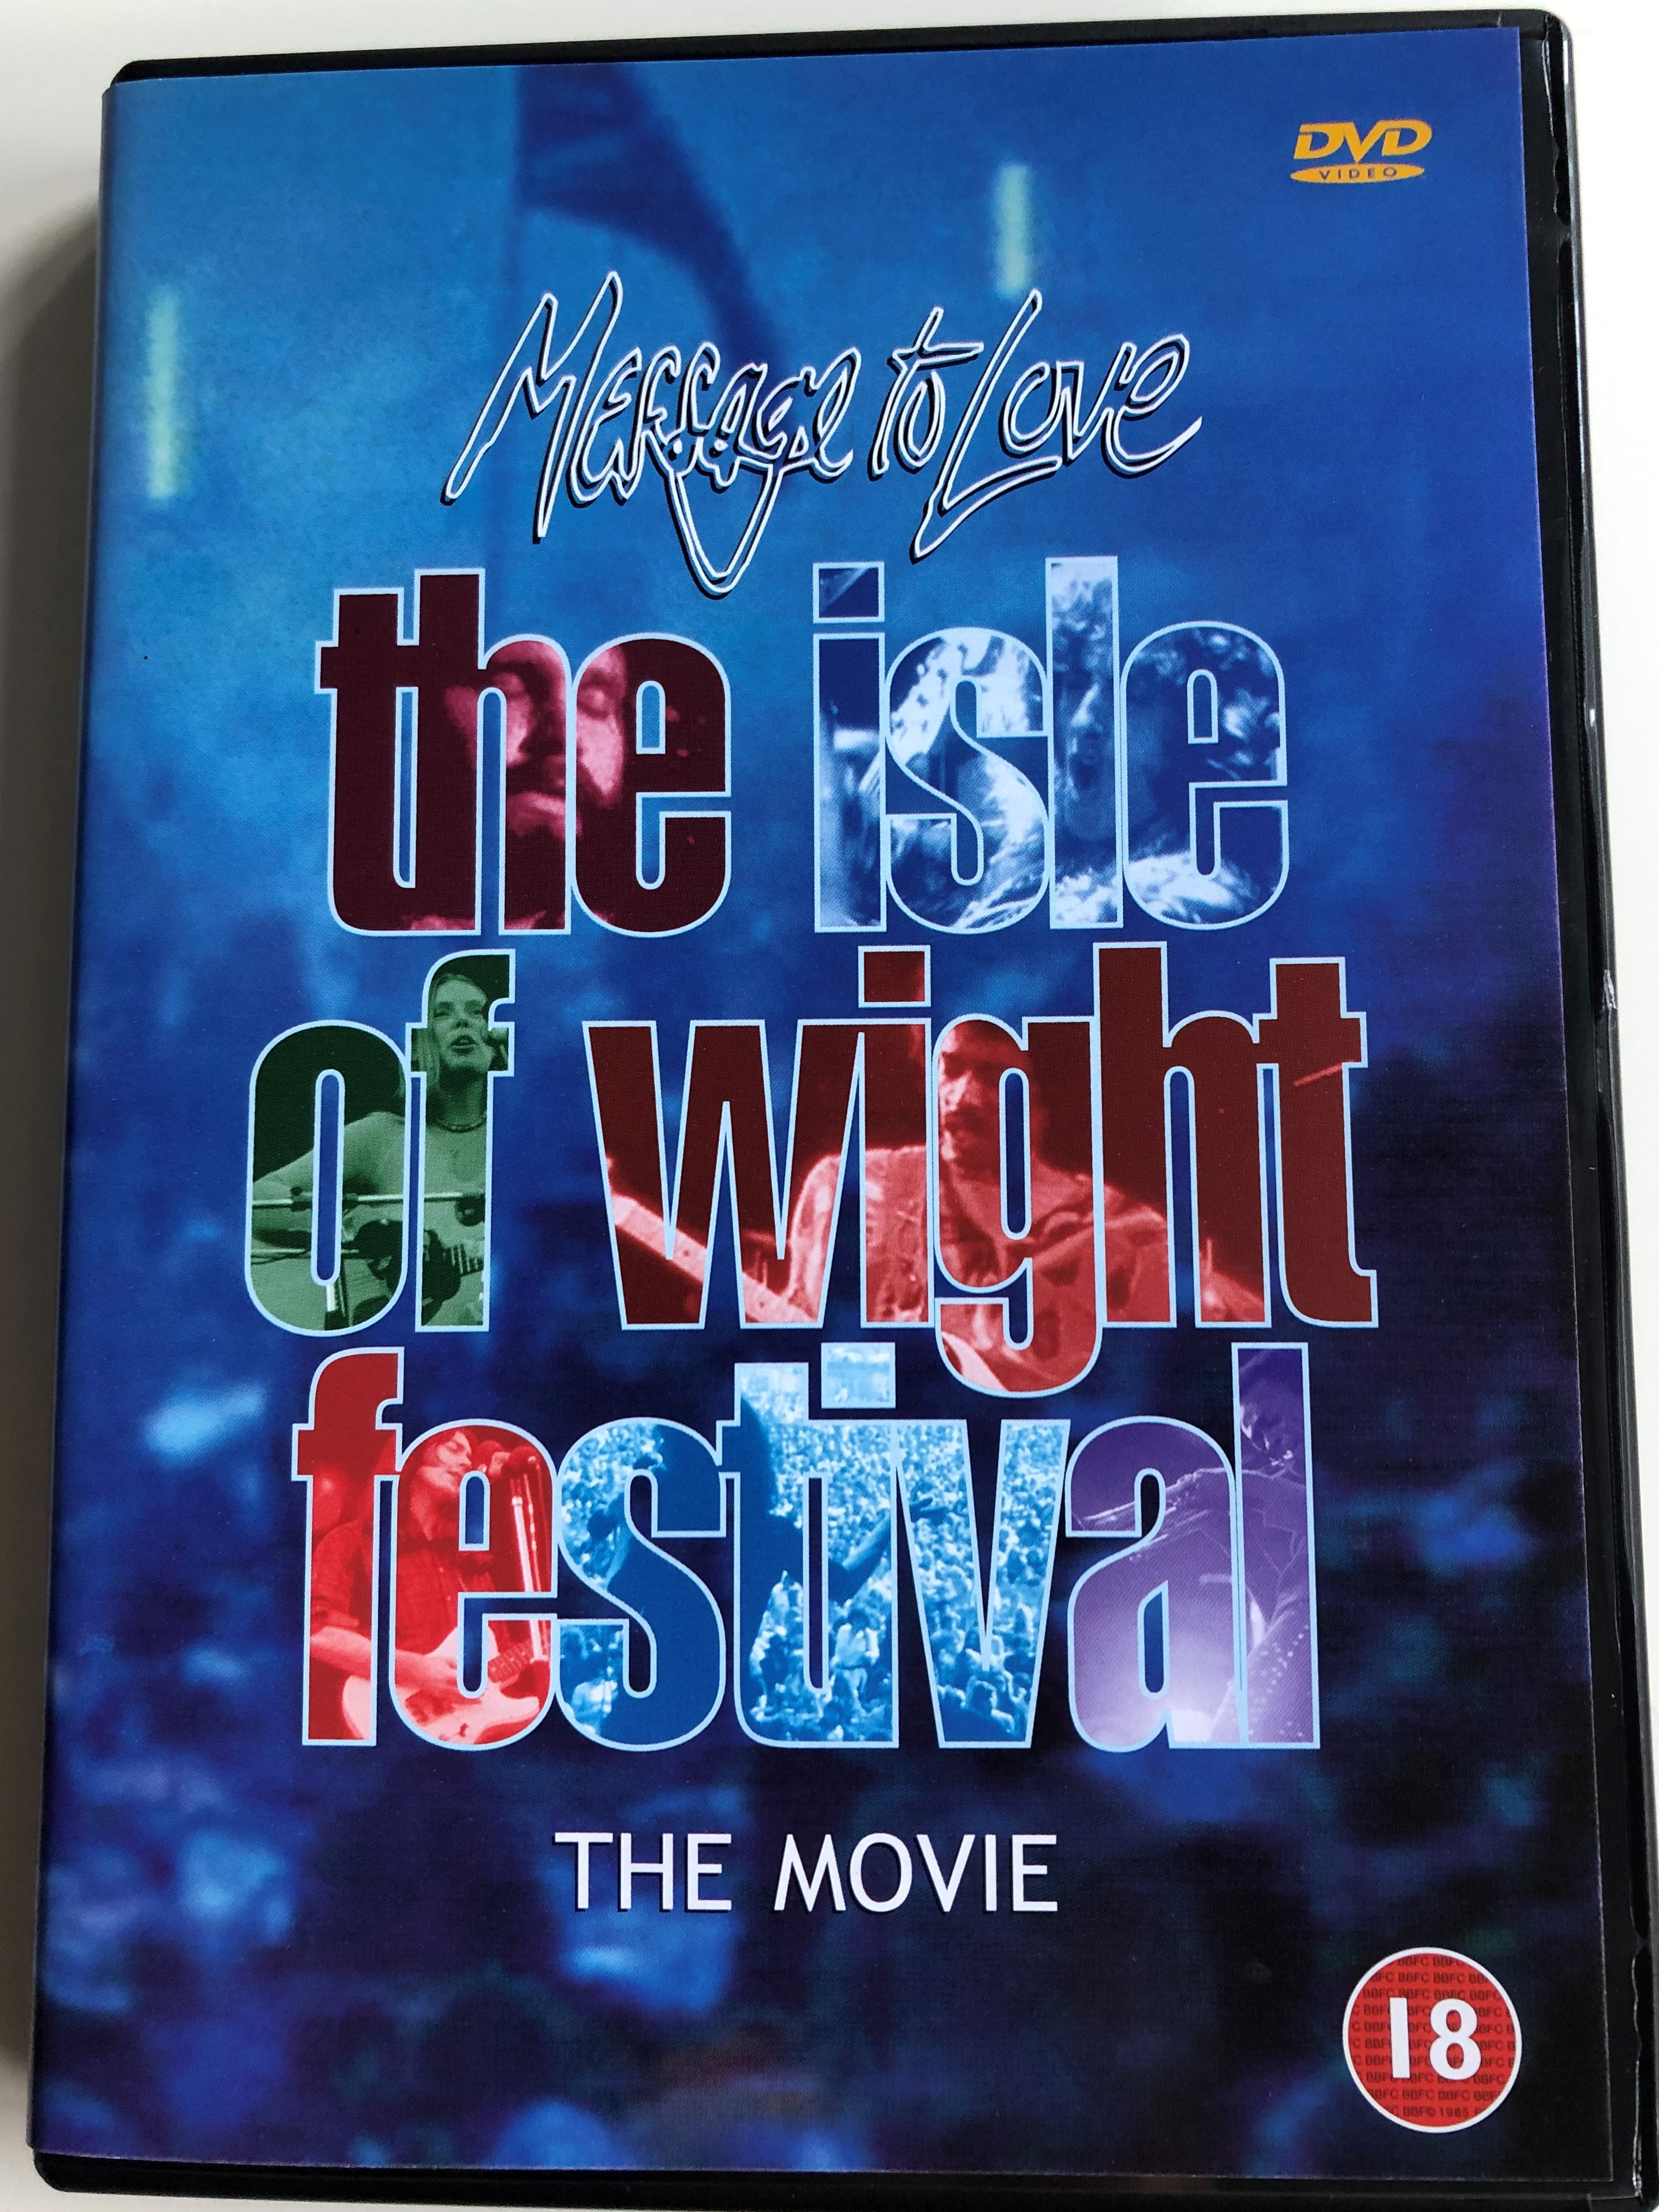 message-to-love-the-isle-of-wight-festival-the-movie-dvd-1995-1.jpg